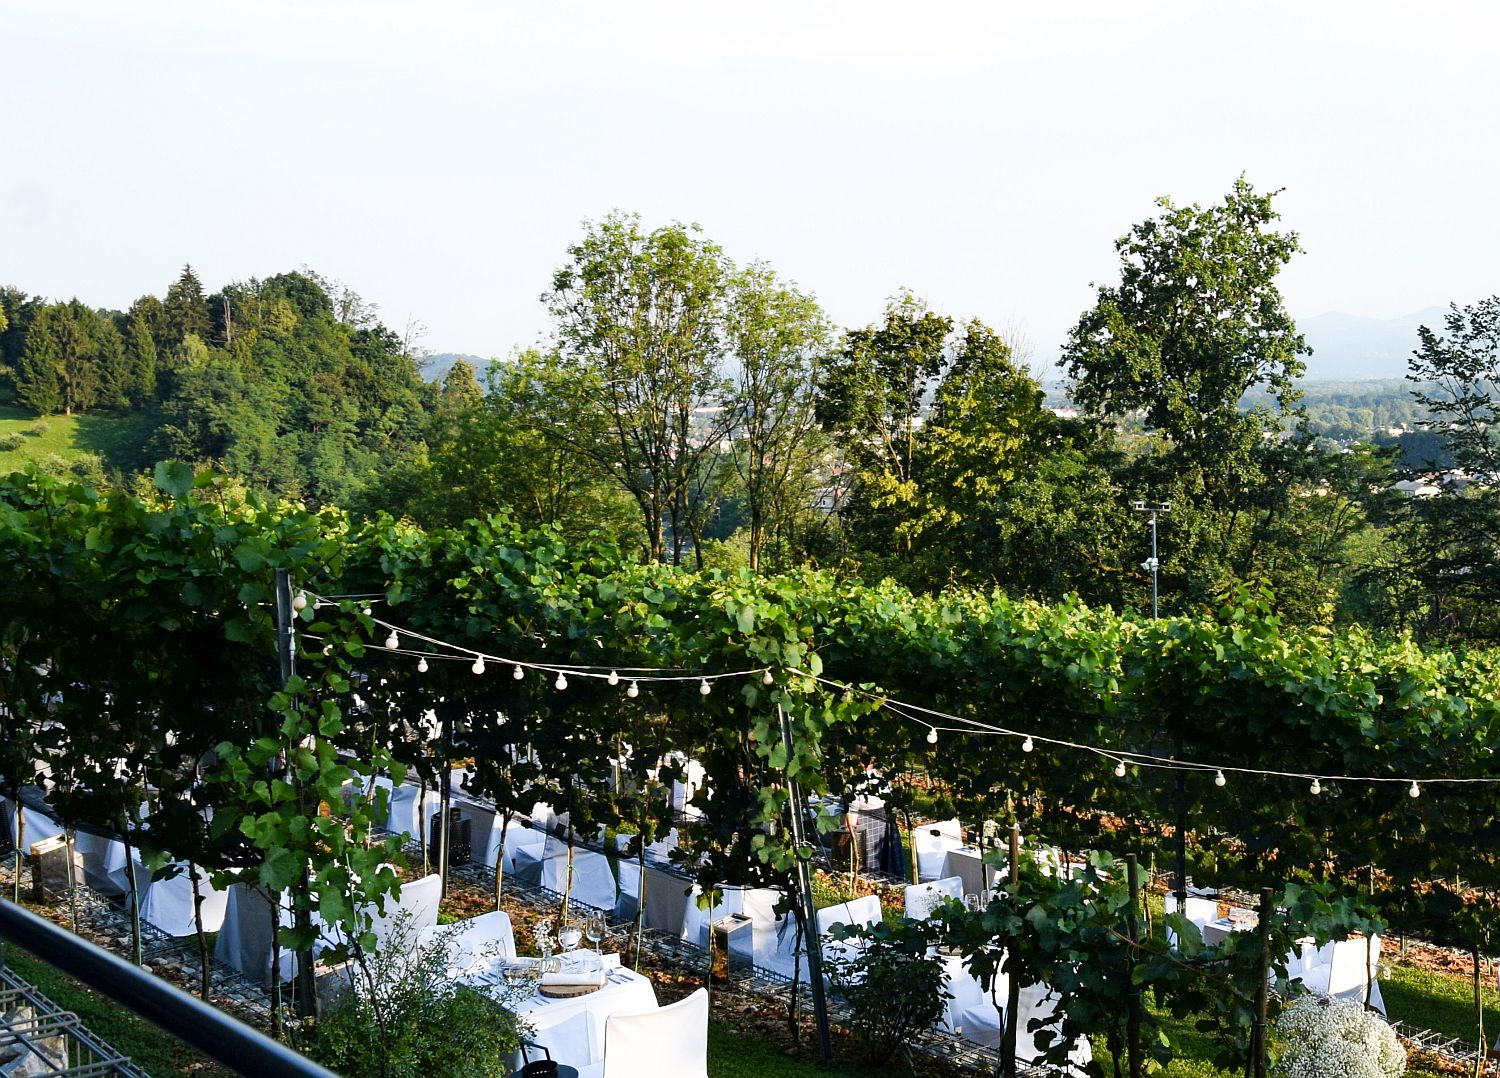 View of the romantic dinner setting at the Ljubljana Castle Vineyard